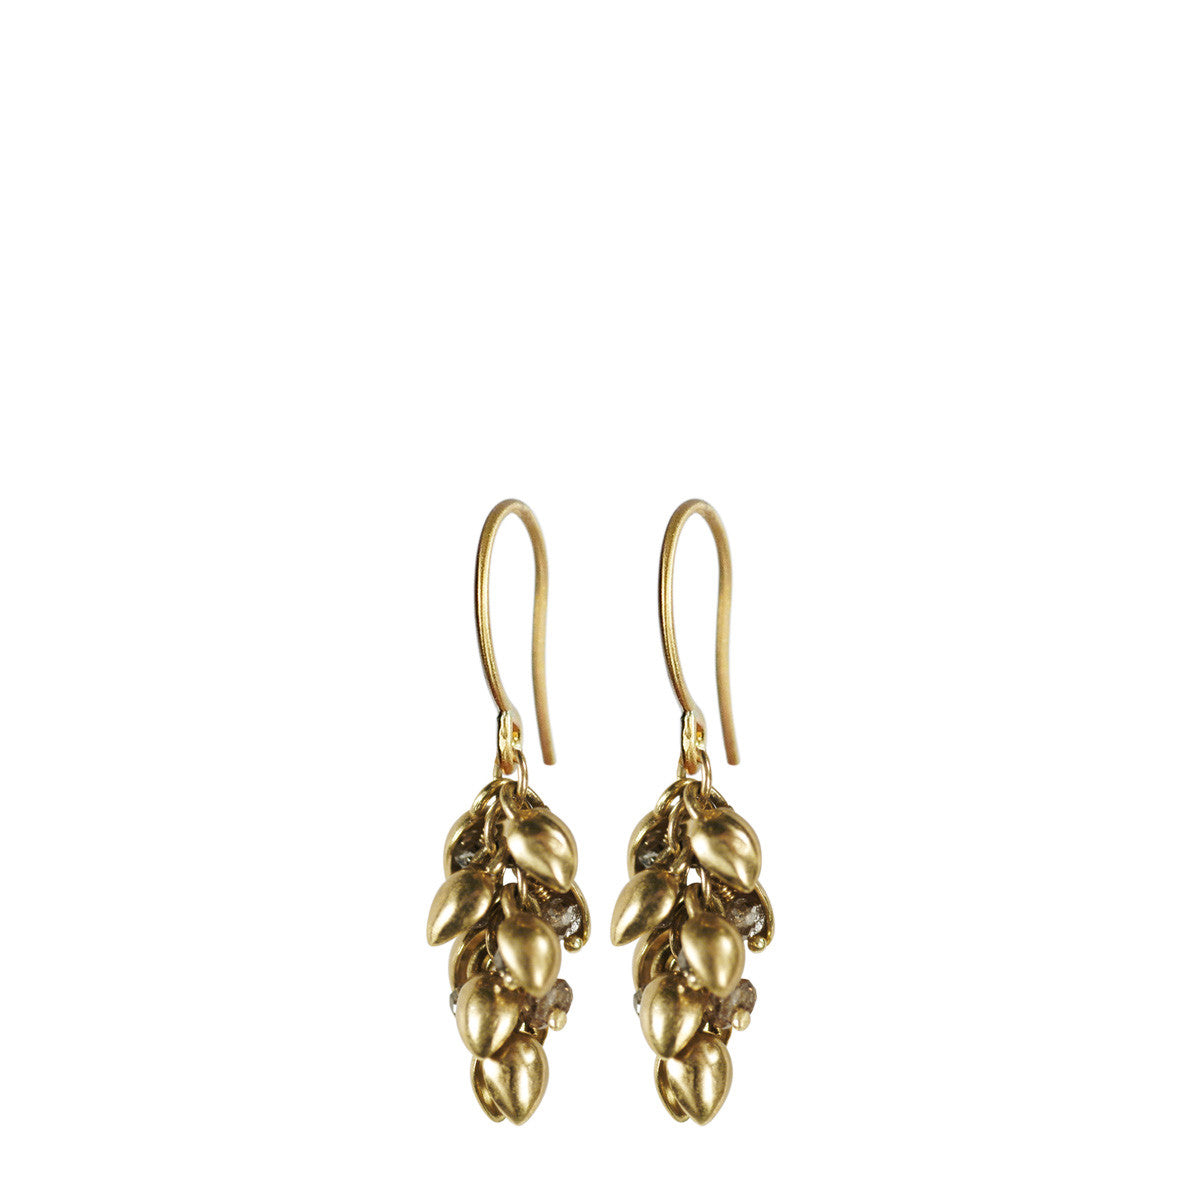 18K Gold Short Baby Pod Earrings with Brown Diamonds